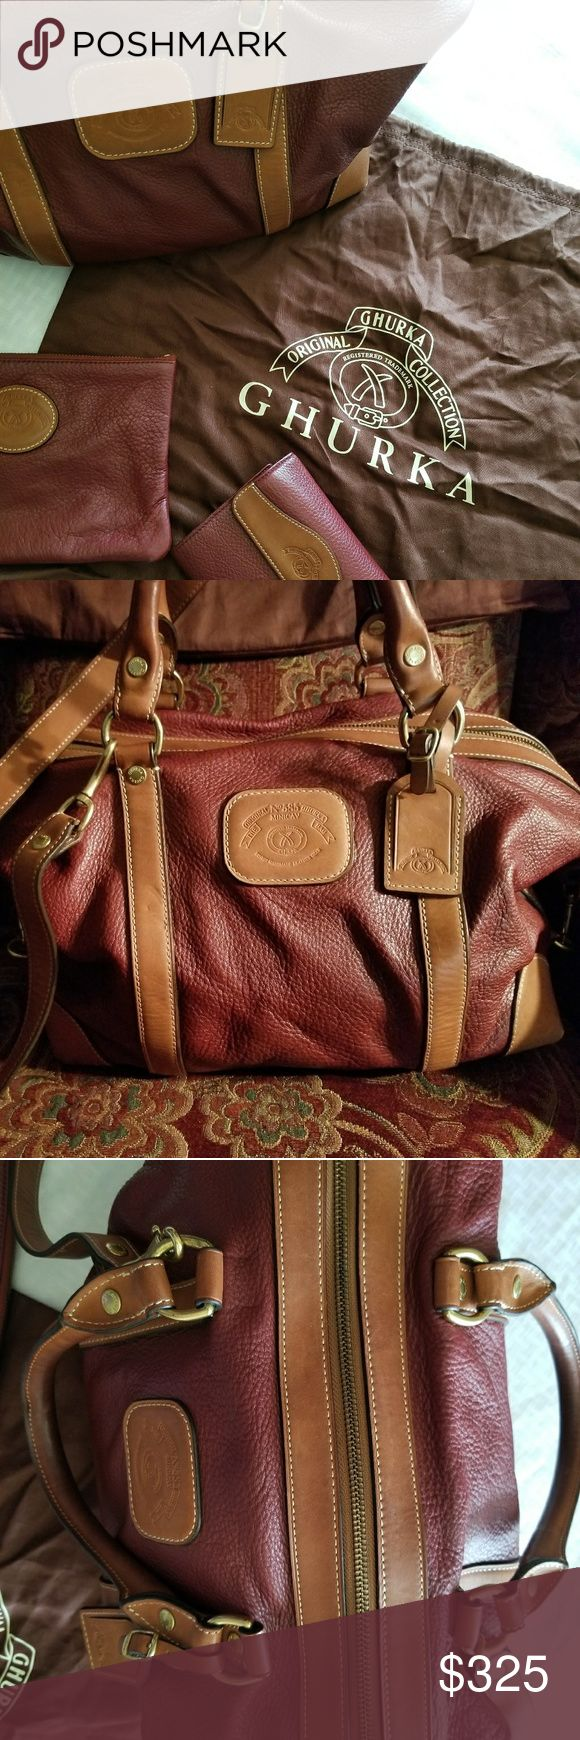 🐎Ghurka Satchel (Burgundy)🐎 Original No 585 Ghurka, The Minicav Bag. The Ghurka name is known for their handcrafted quality leather products. The value of this purse is  over $1000, but when sold on formerly known as Shop Nbc, it was $650 plus. Minor wear to purse, specifically the corners of purse. No spots or ink marks inside purse. Two spots on strap as seen in pictures outside near zipper area w/normal wear to hardware. Perfect for any lady, but I can see my fellow country life lovers…